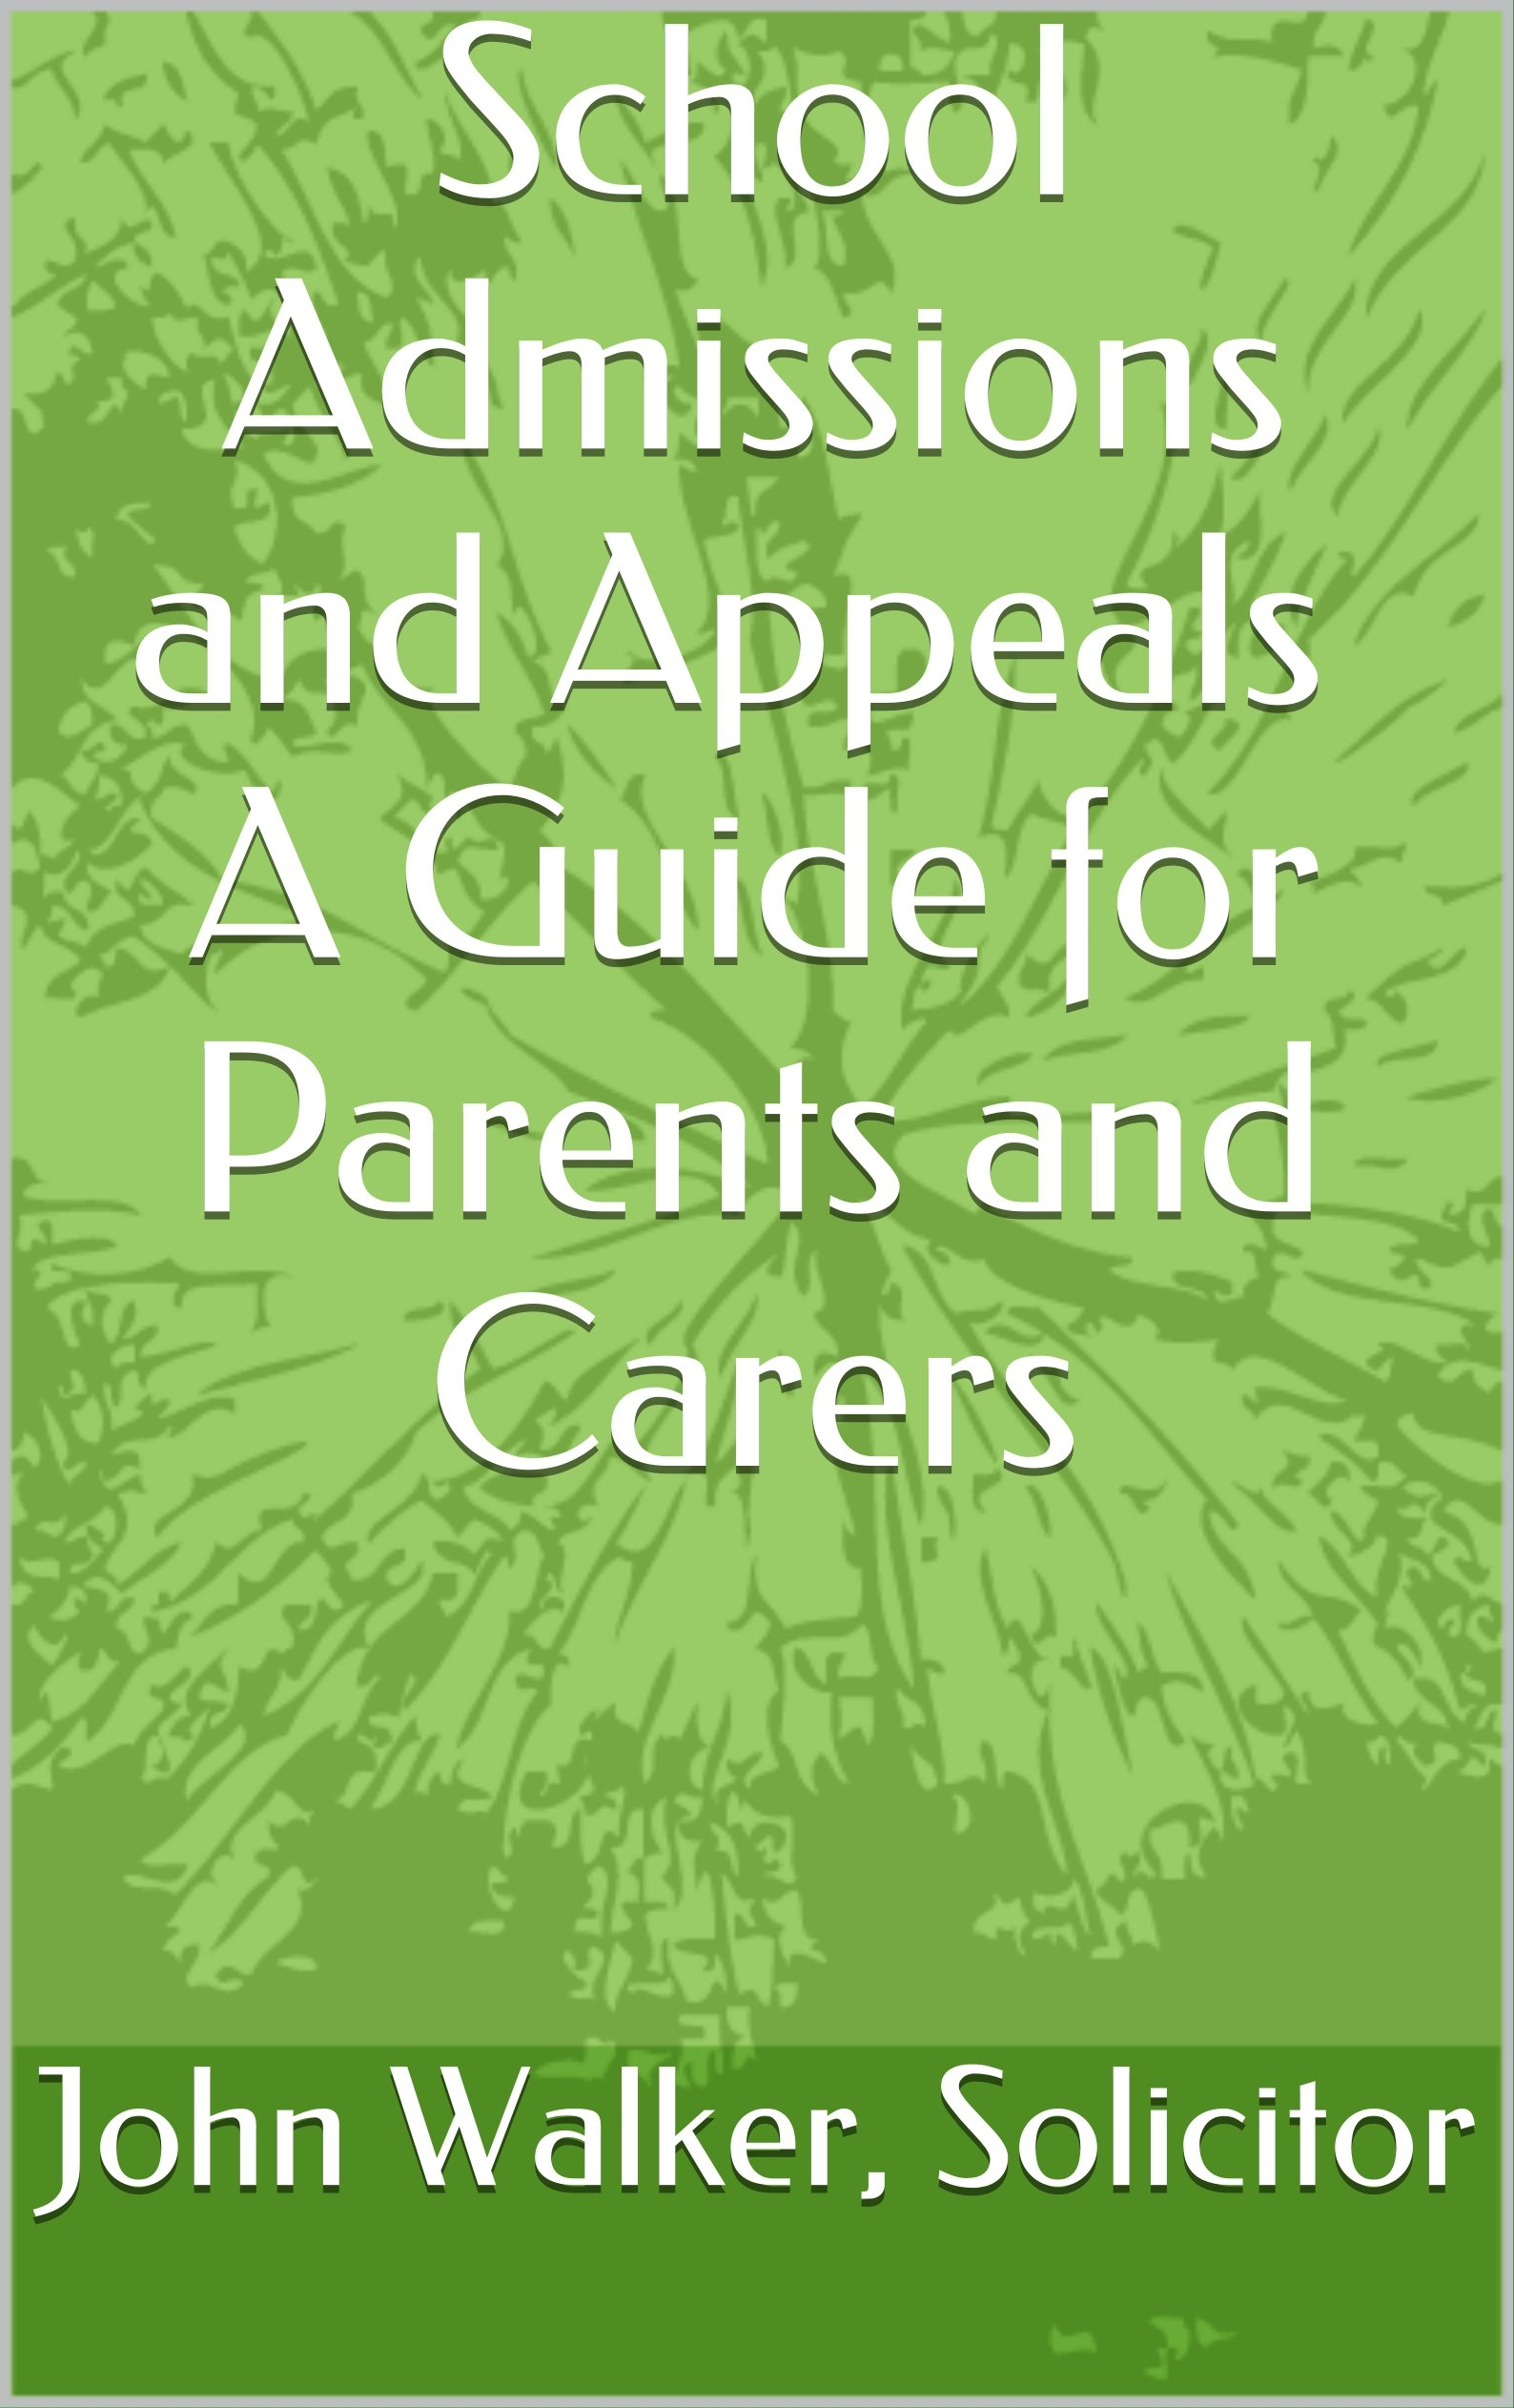 School Admissions and Appeals A Guide for Parents and Carers (English Edition)